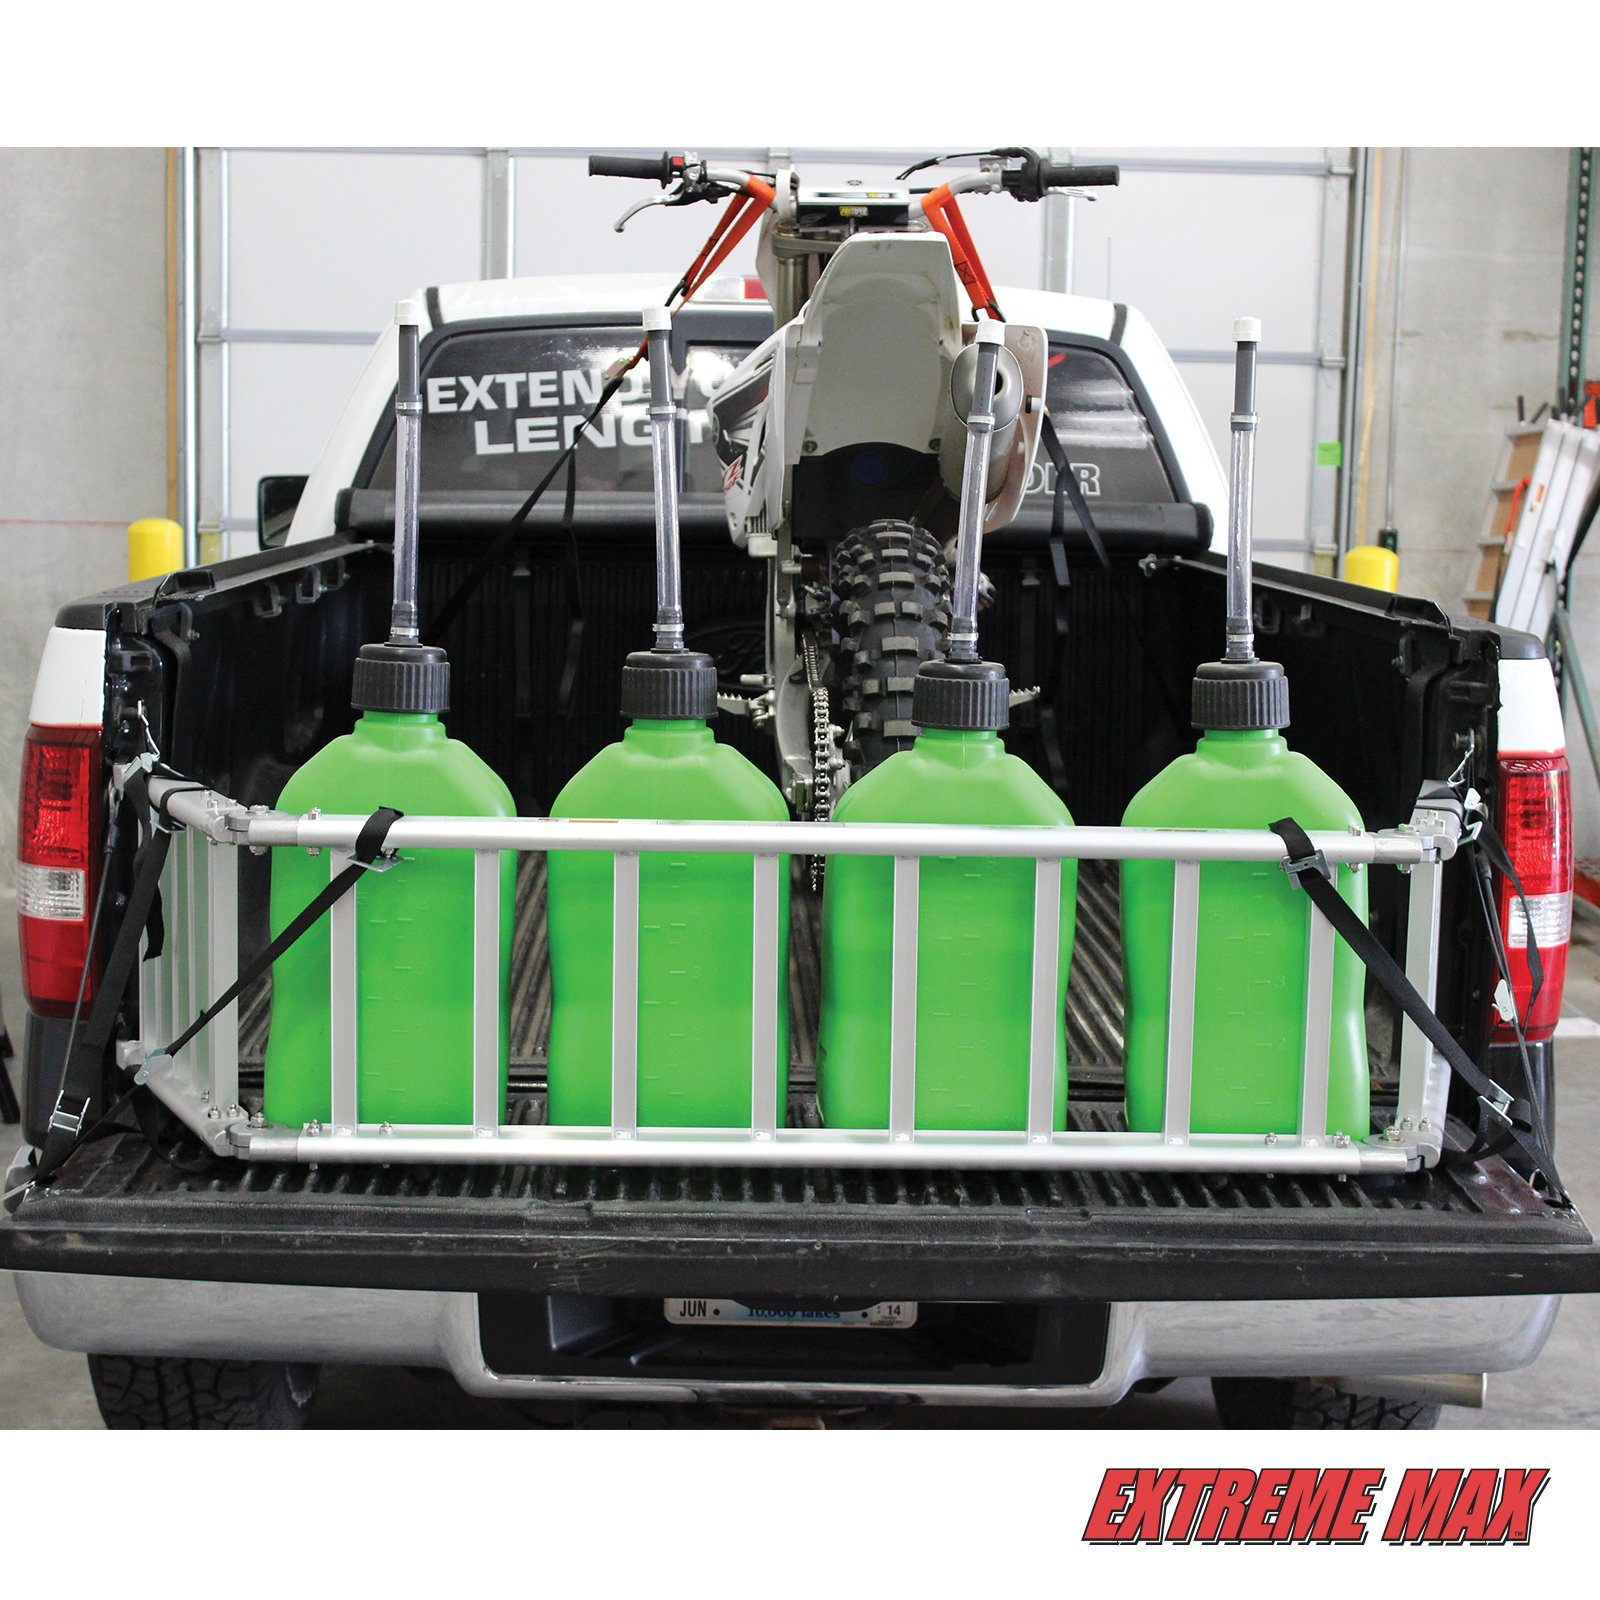 Extreme Max (NR002S-SLVR) Motorcycle RampXtender Aluminum Ramp Set and Tailgate Extender Combo by Extreme Max (Image #2)